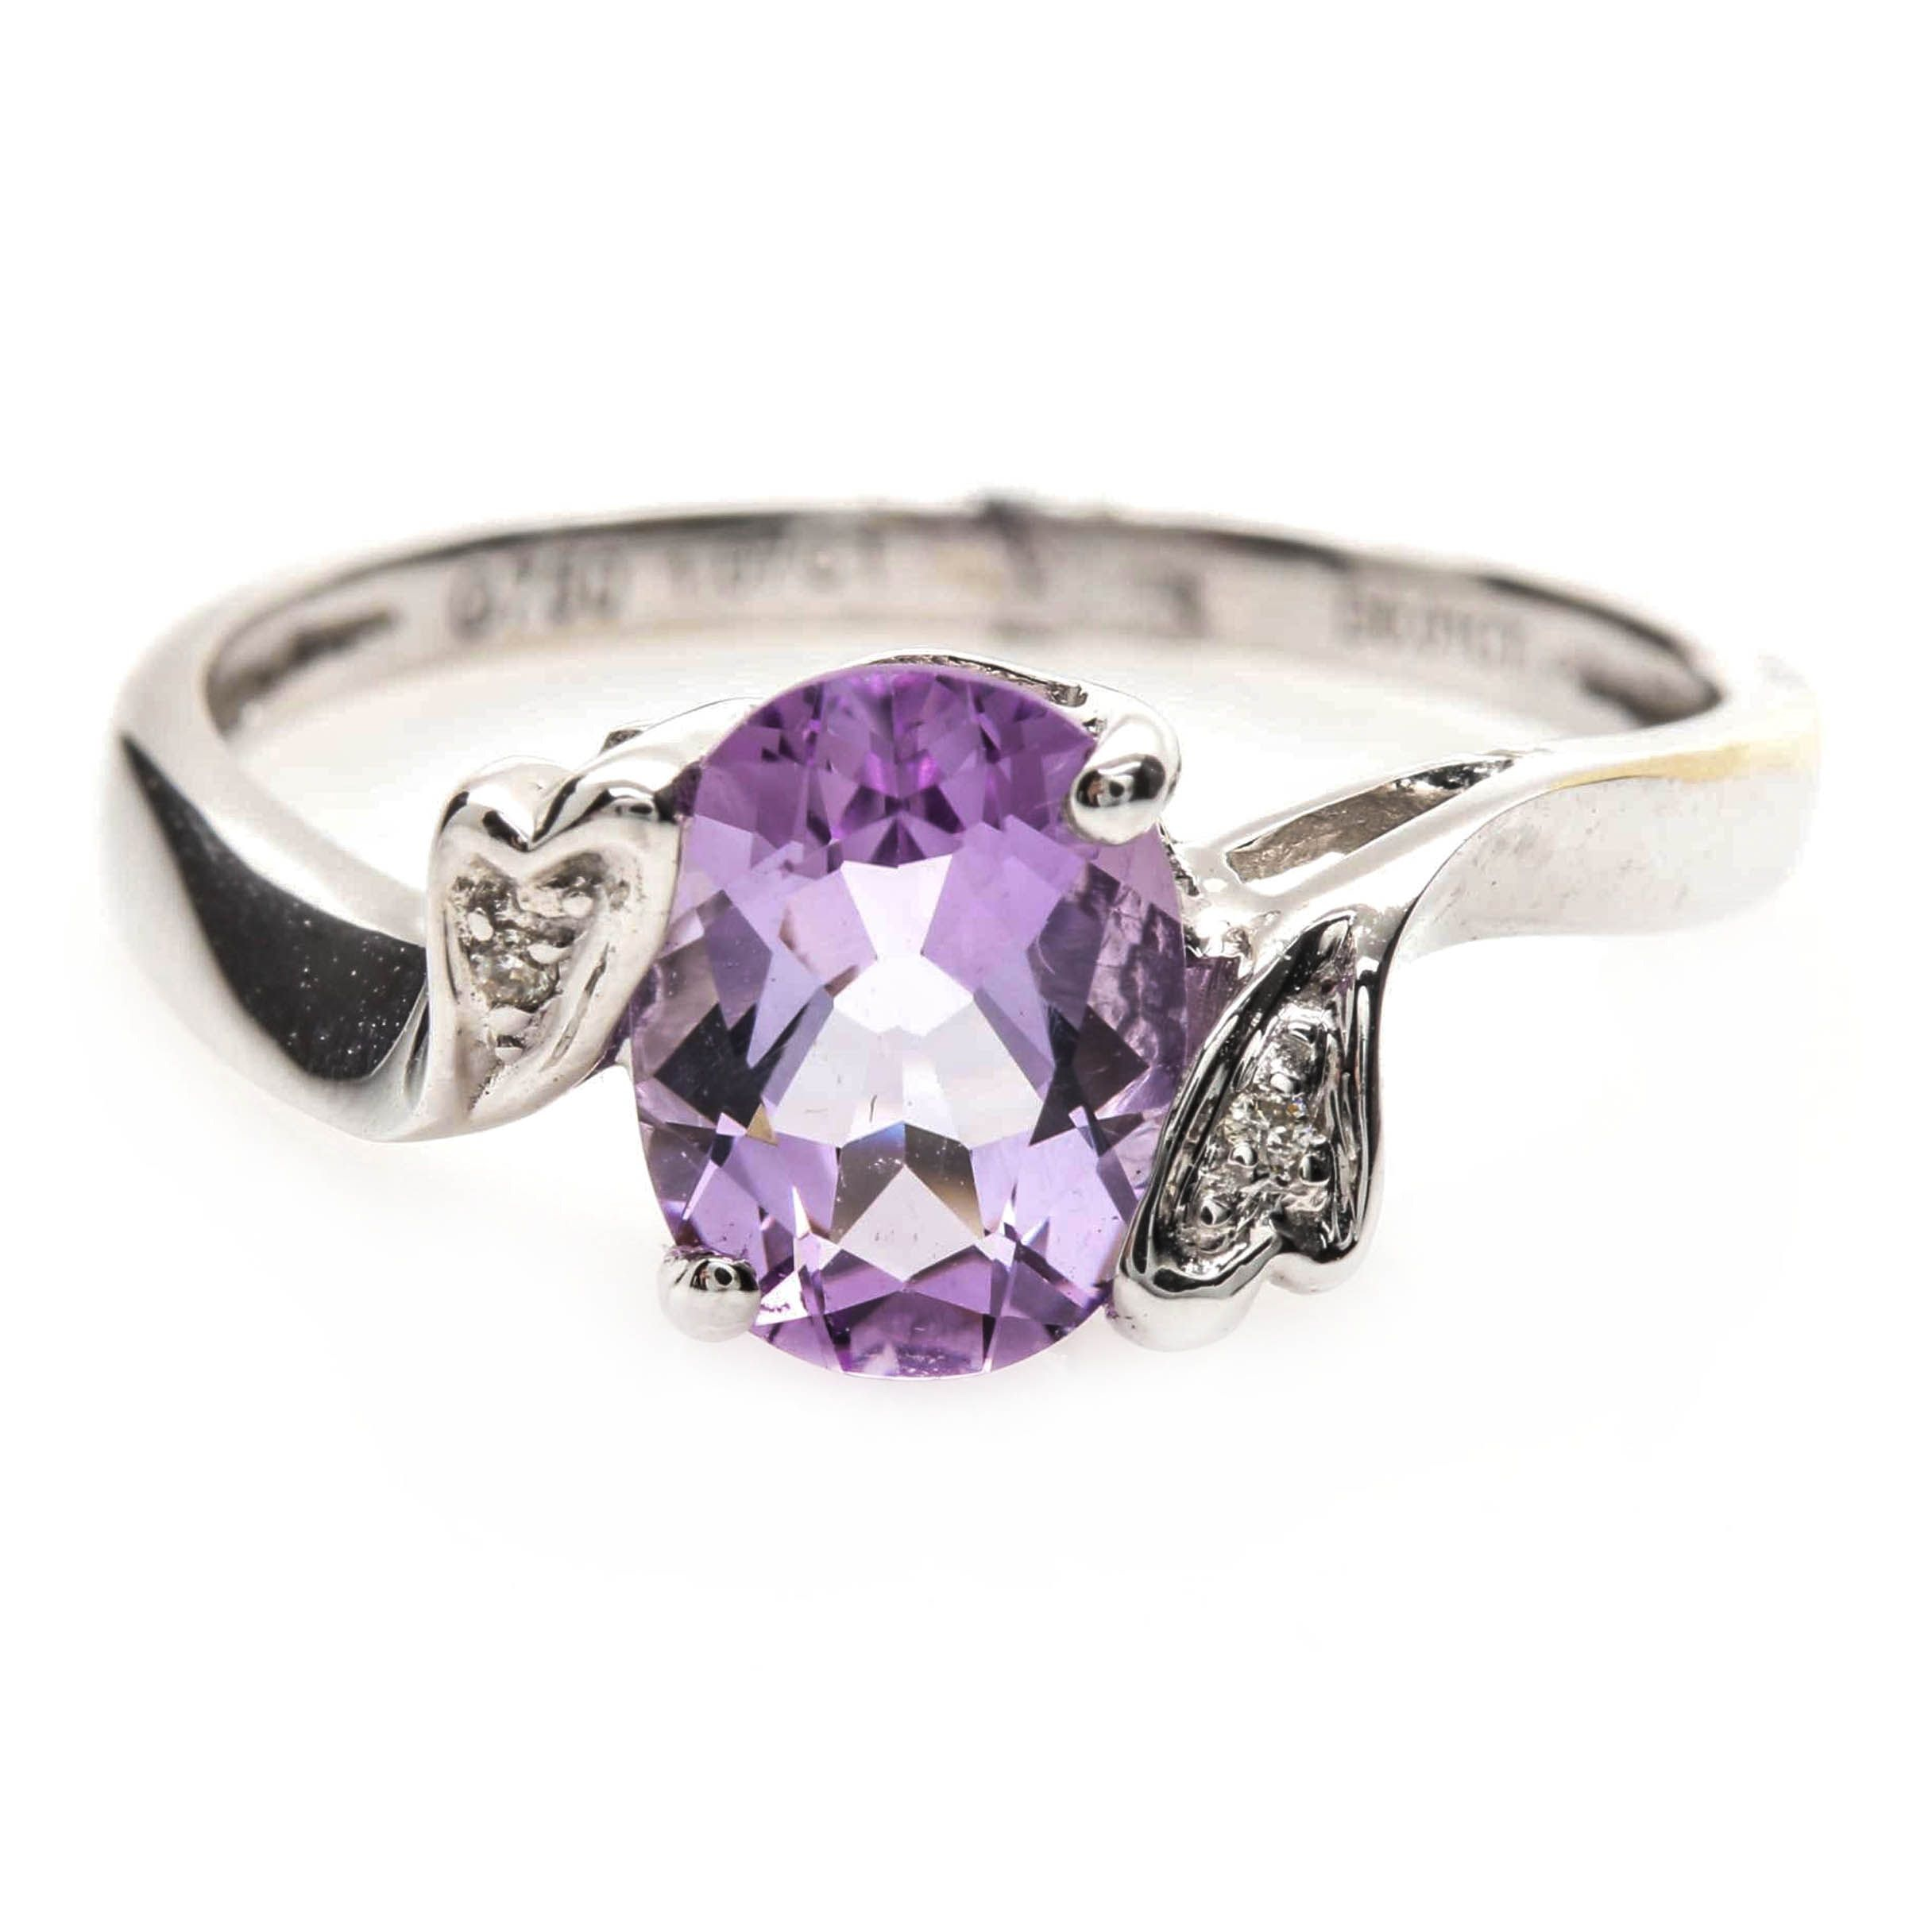 18K White Gold Amethyst and Diamond Bypass Ring